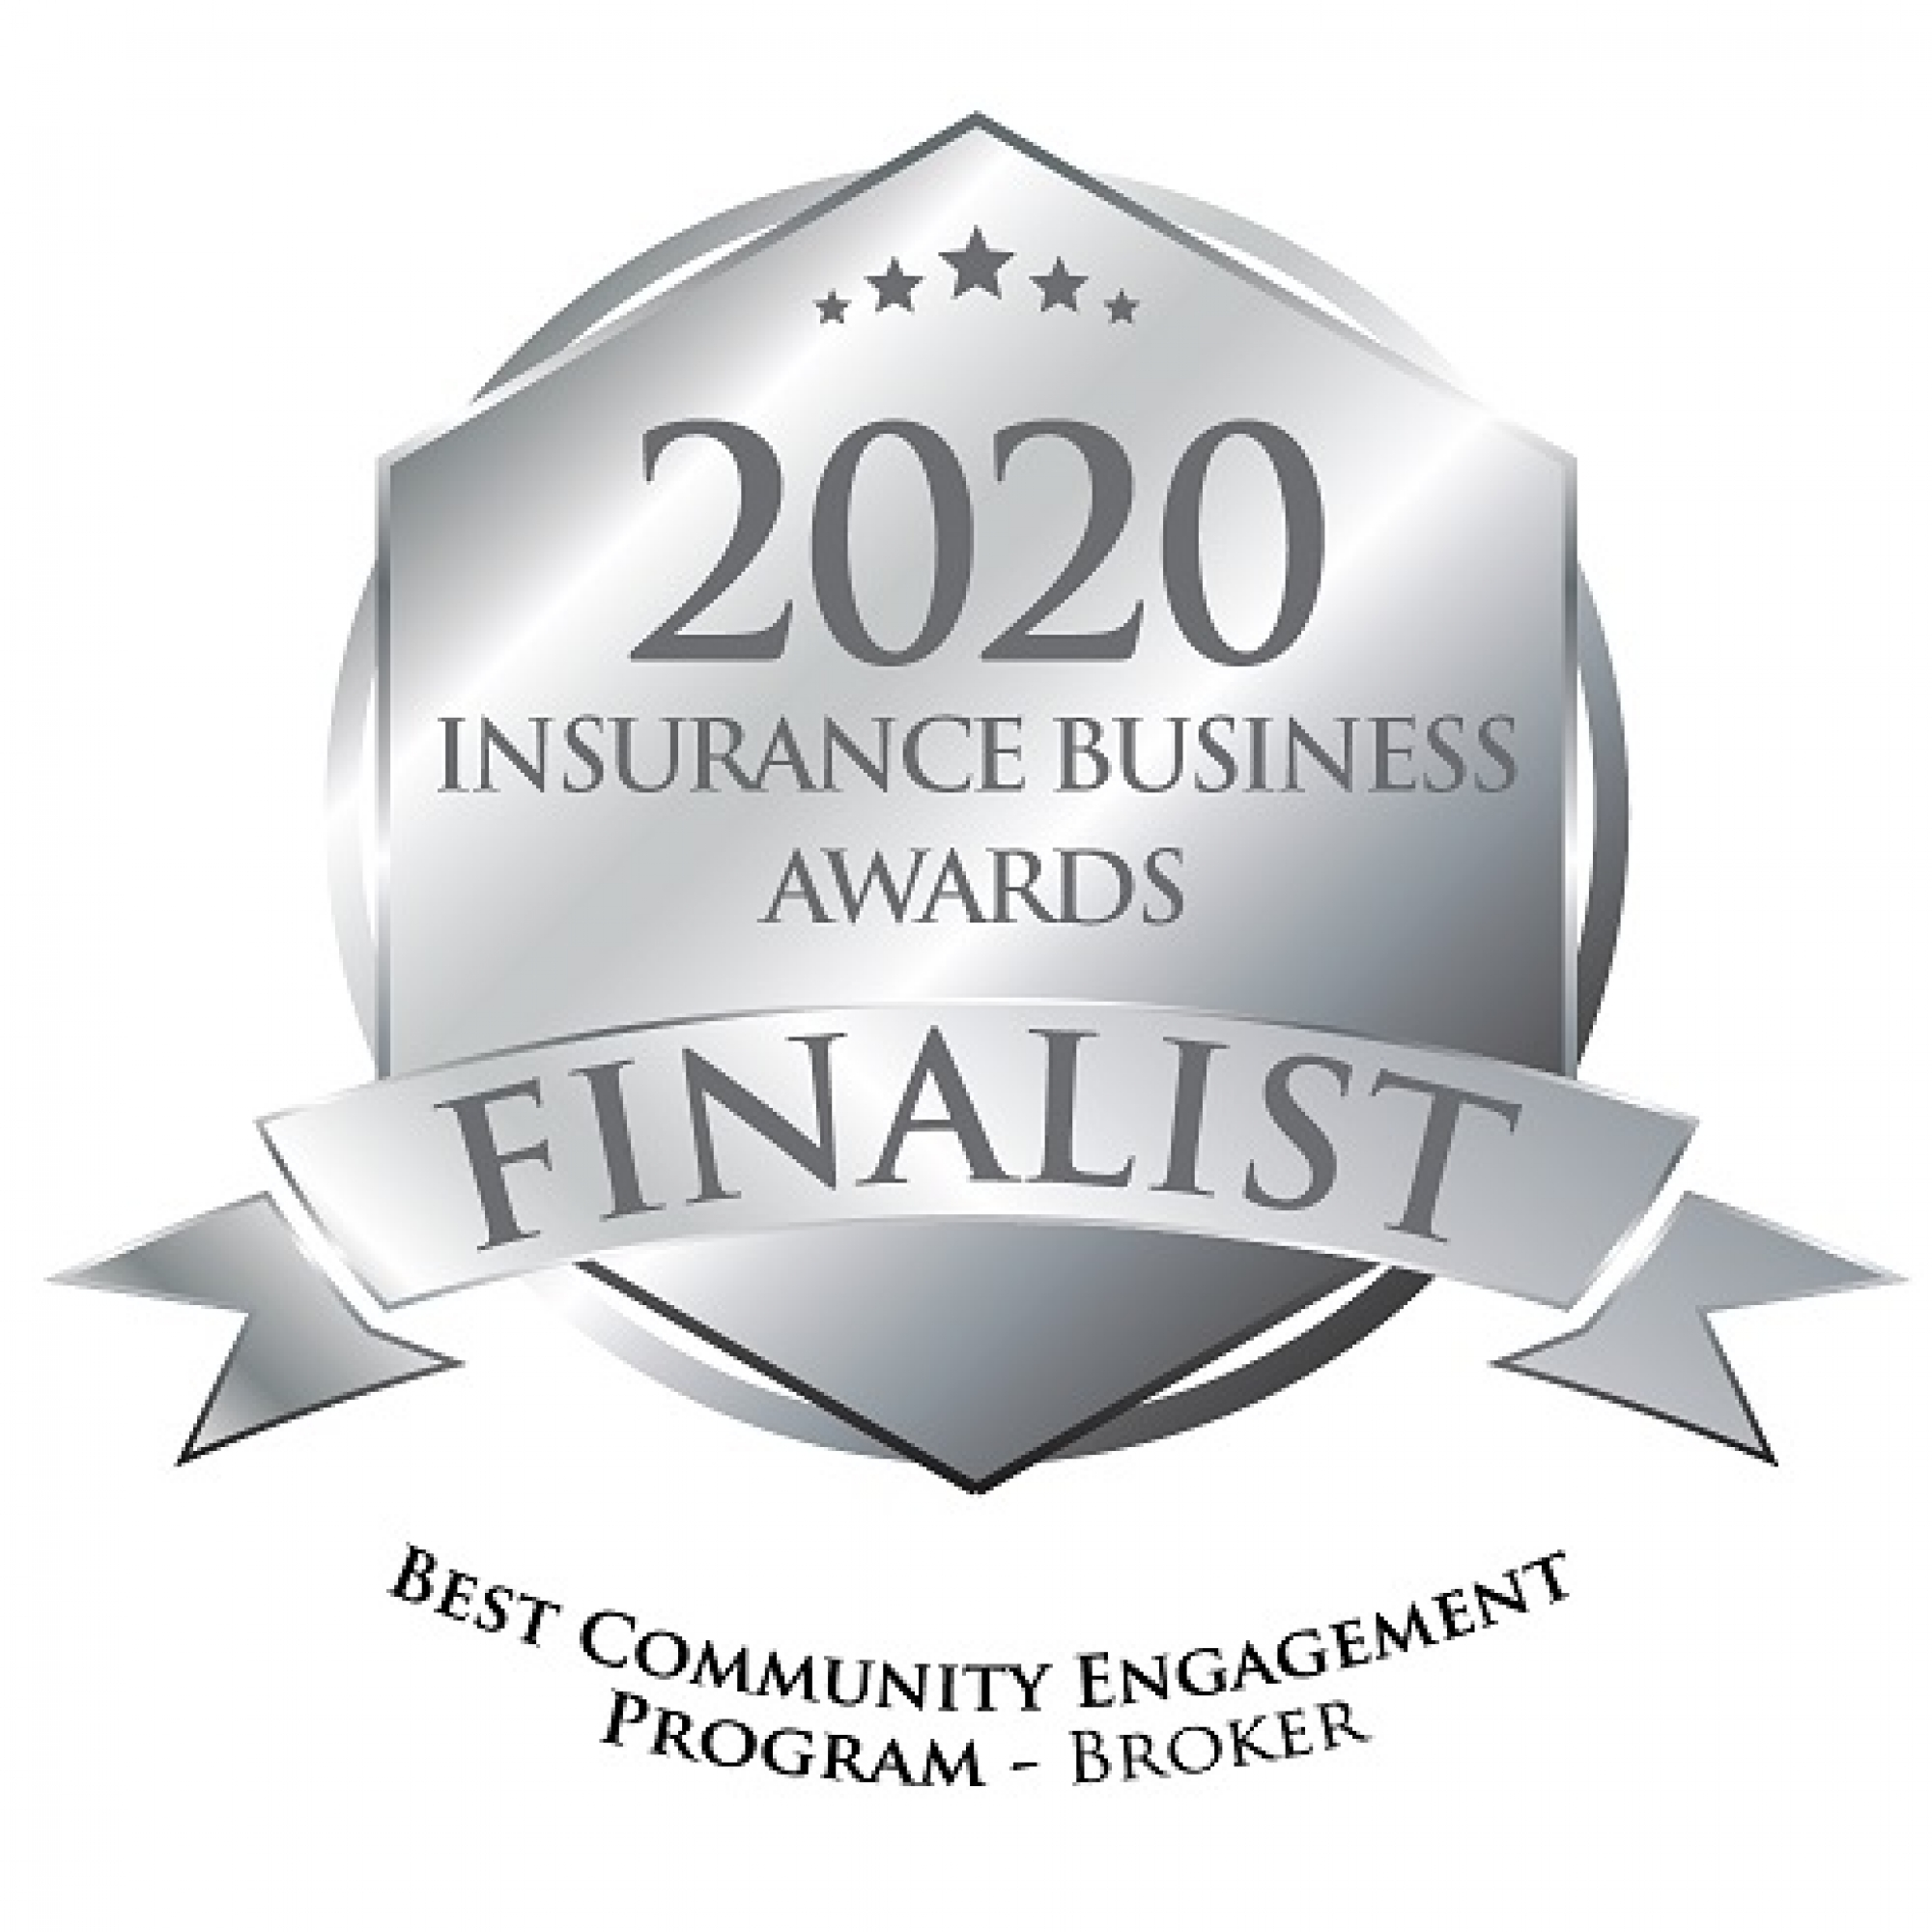 2020 Insurance Business Awards Finalist - Best Community Engagement Program - Broker